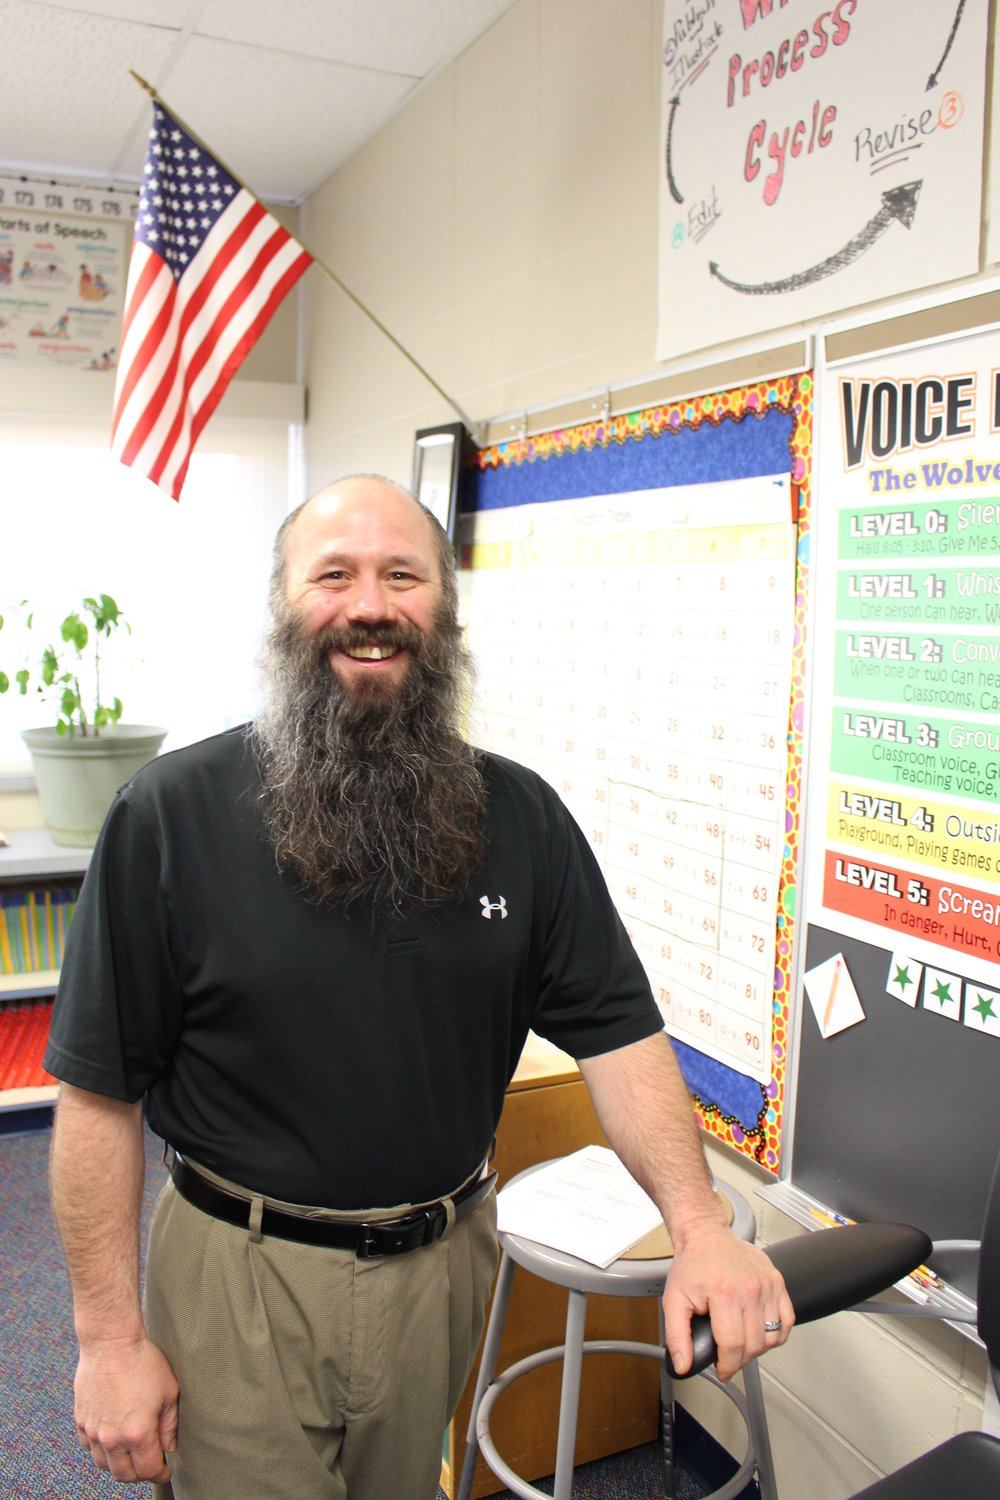 WDC is proud and excited to announce that Dan Savoie, pictured, along with Cami Oakes, will be recognized at NJPA's Educators of Excellence Awards Banquet on May 1.